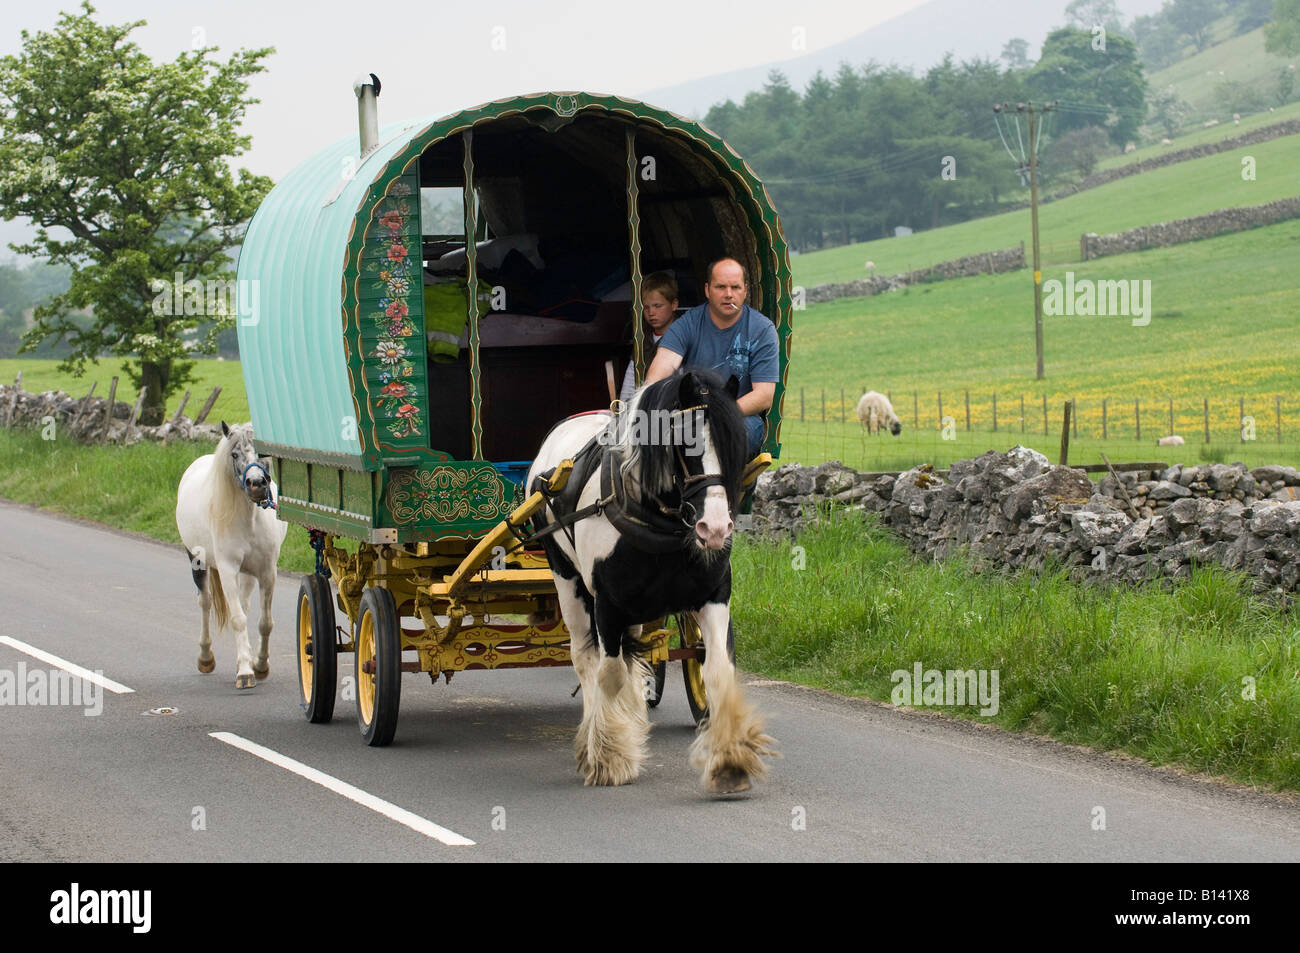 Horse drawn caravan on the road heading to the Appelby Horse Fair in Cumbria - Stock Image